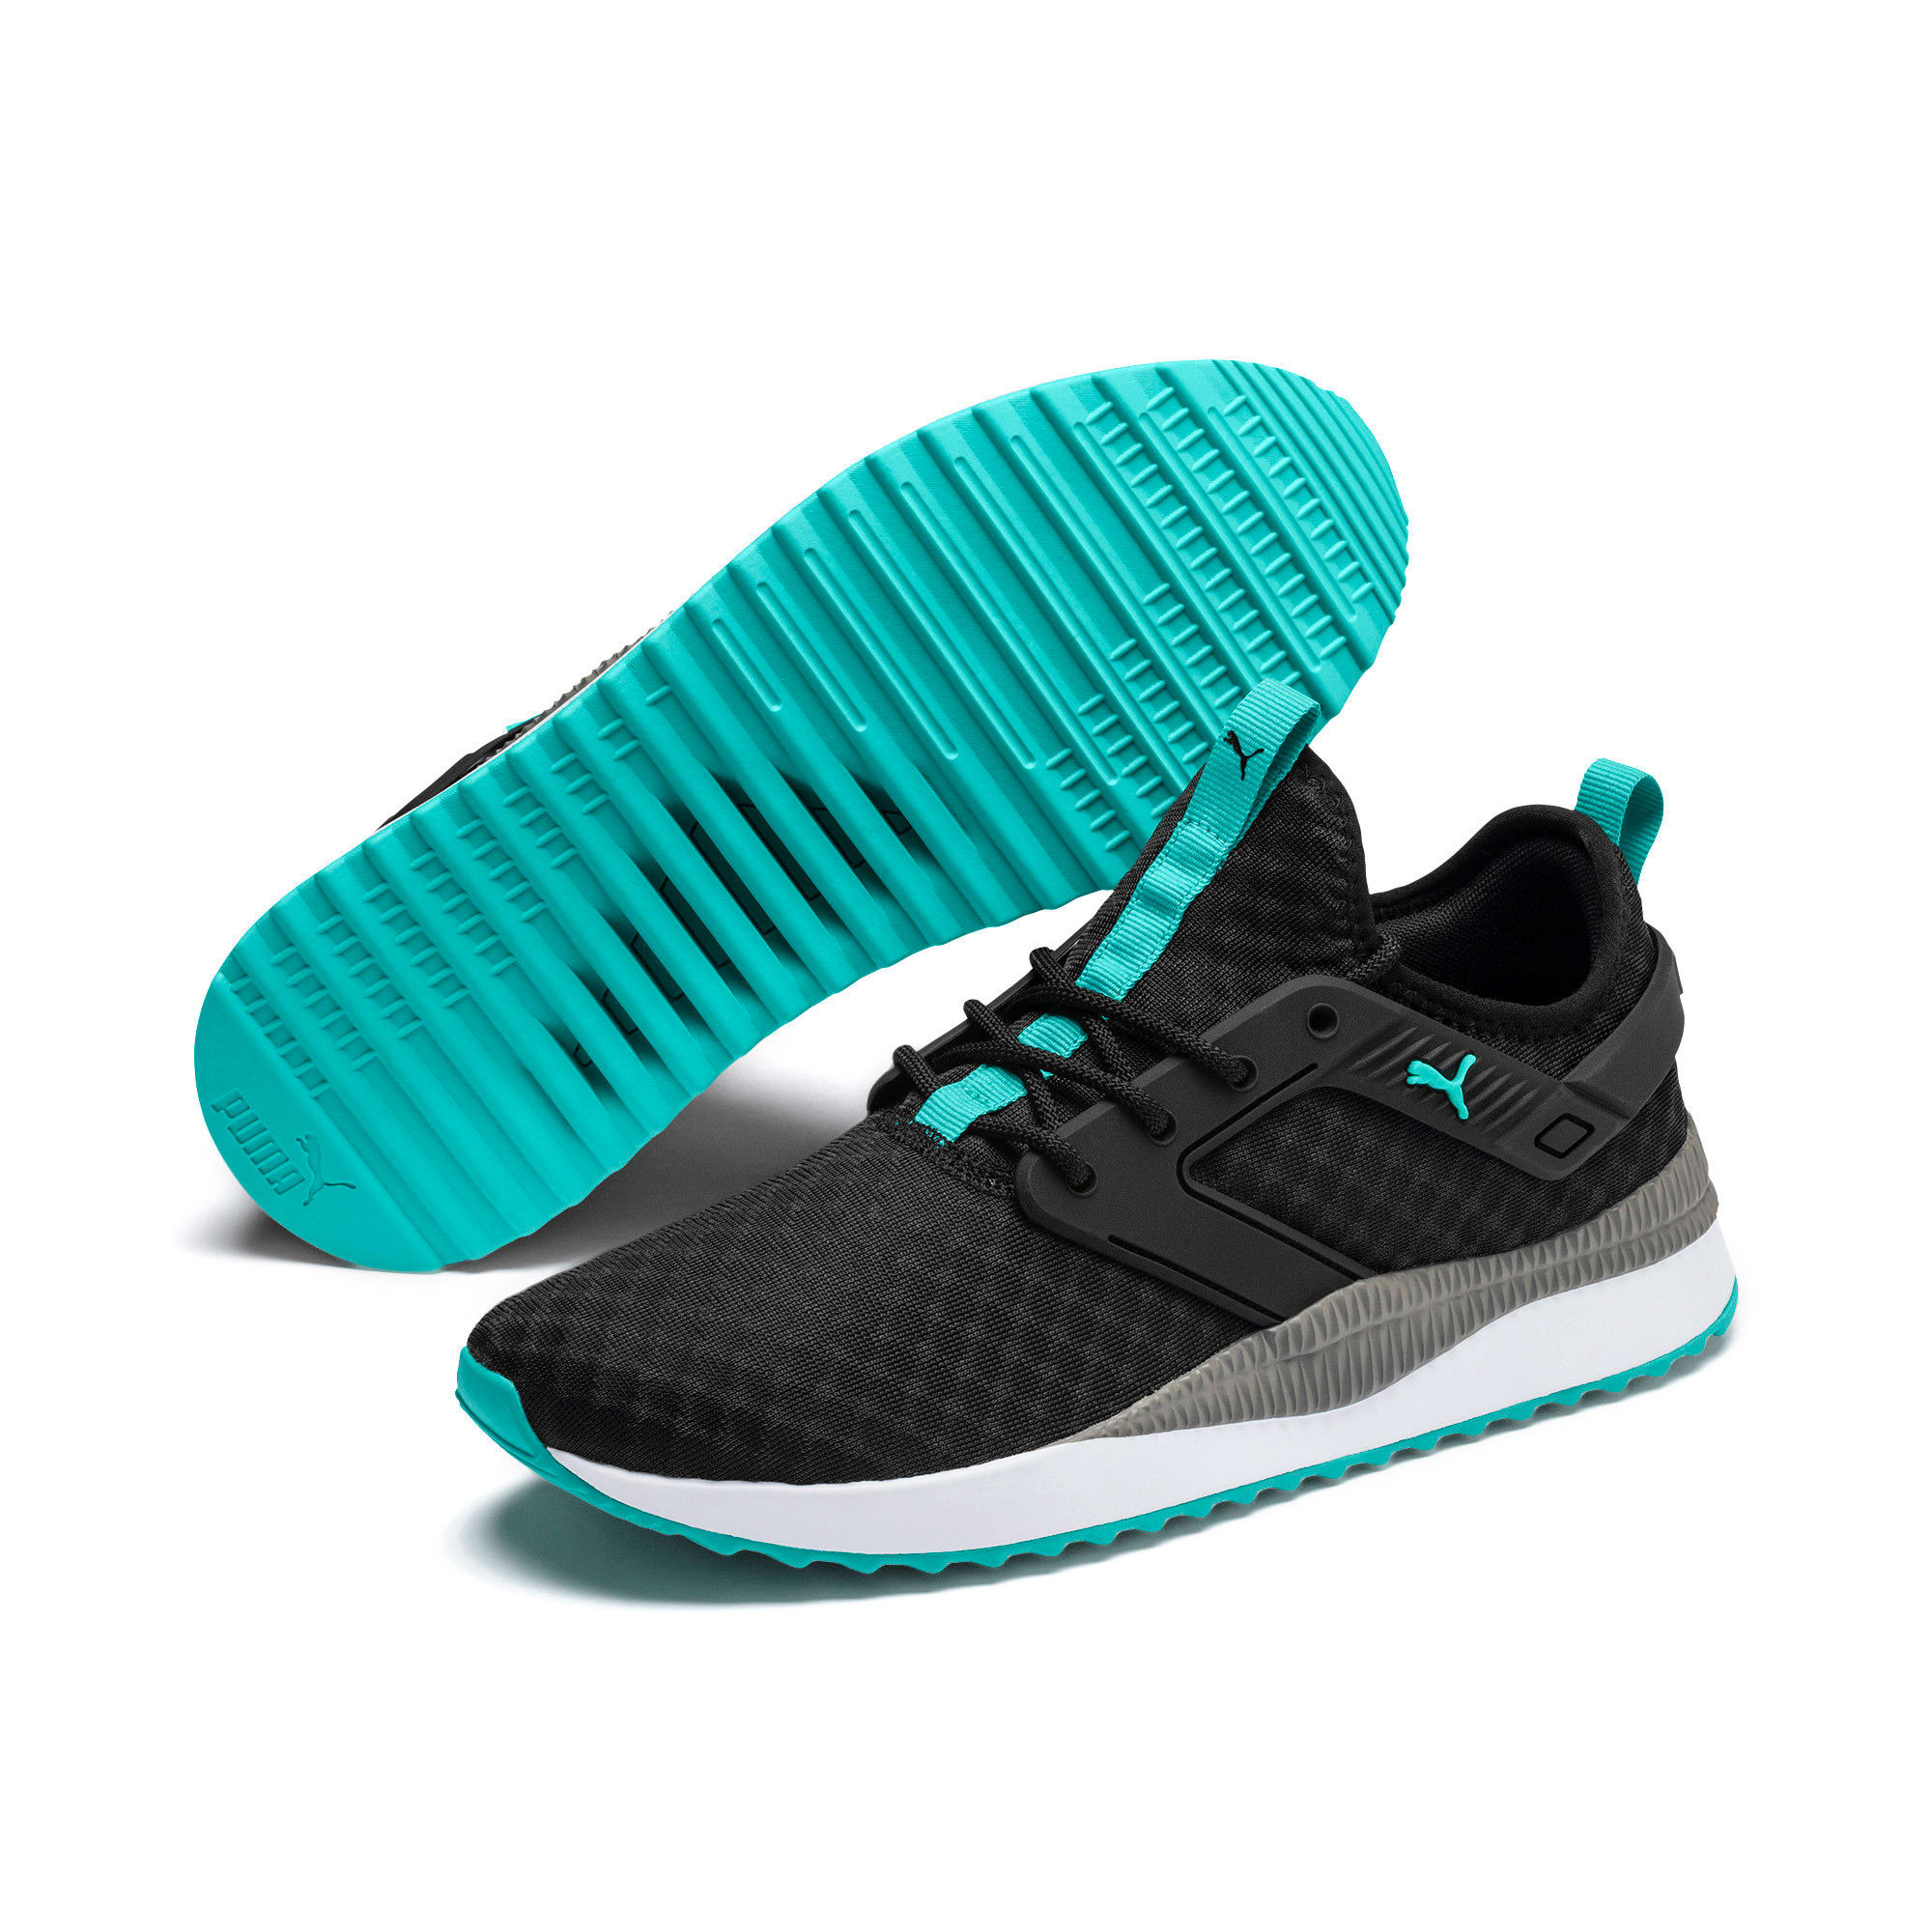 Thumbnail 3 of Pacer Next Excel Running Shoes, Puma Black-Blue Turquoise, medium